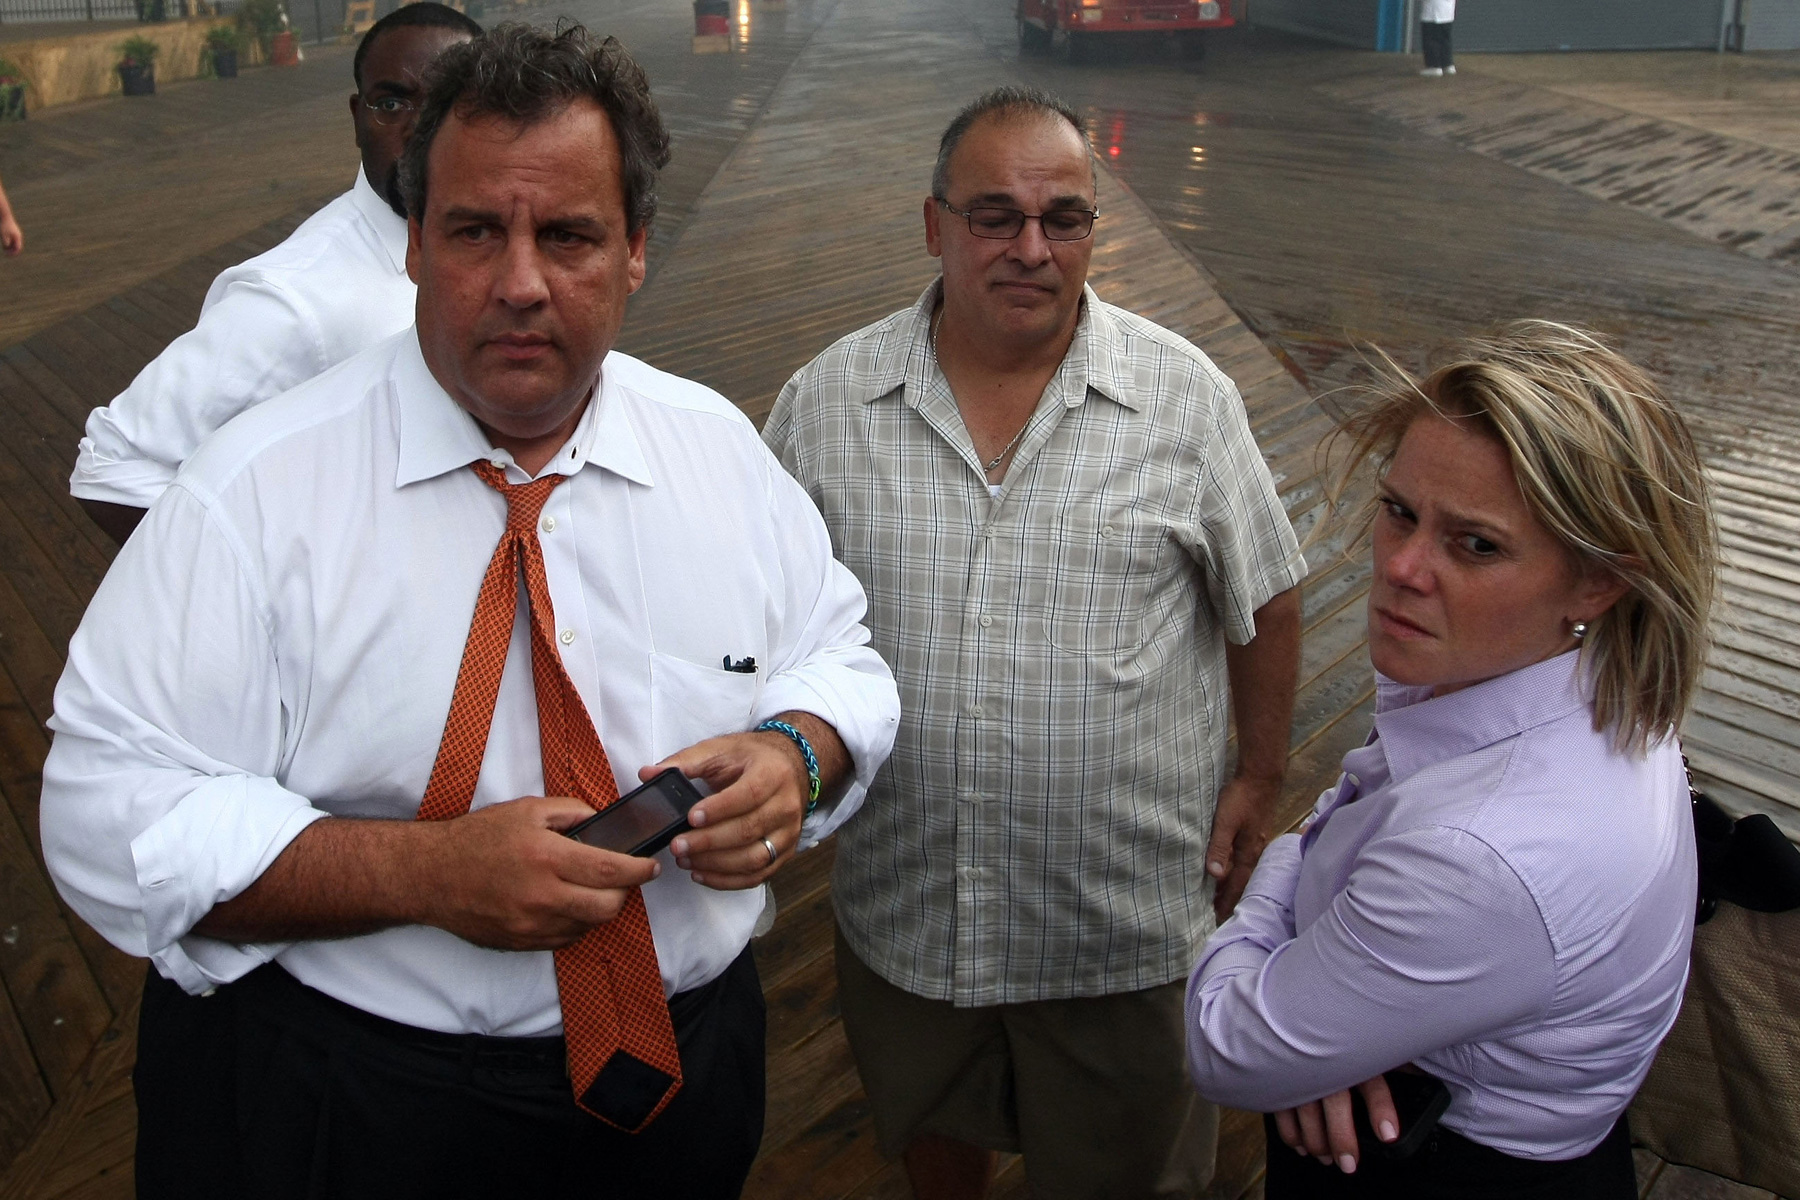 In this Sept. 12, 2013, file photo provided by the Office of the Governor of New Jersey, Deputy Chief of Staff Bridget Anne Kelly, right, stands with Gov. Chris Christie, left, during a tour of the Seaside Heights, N.J., boardwalk after it was hit by a massive fire